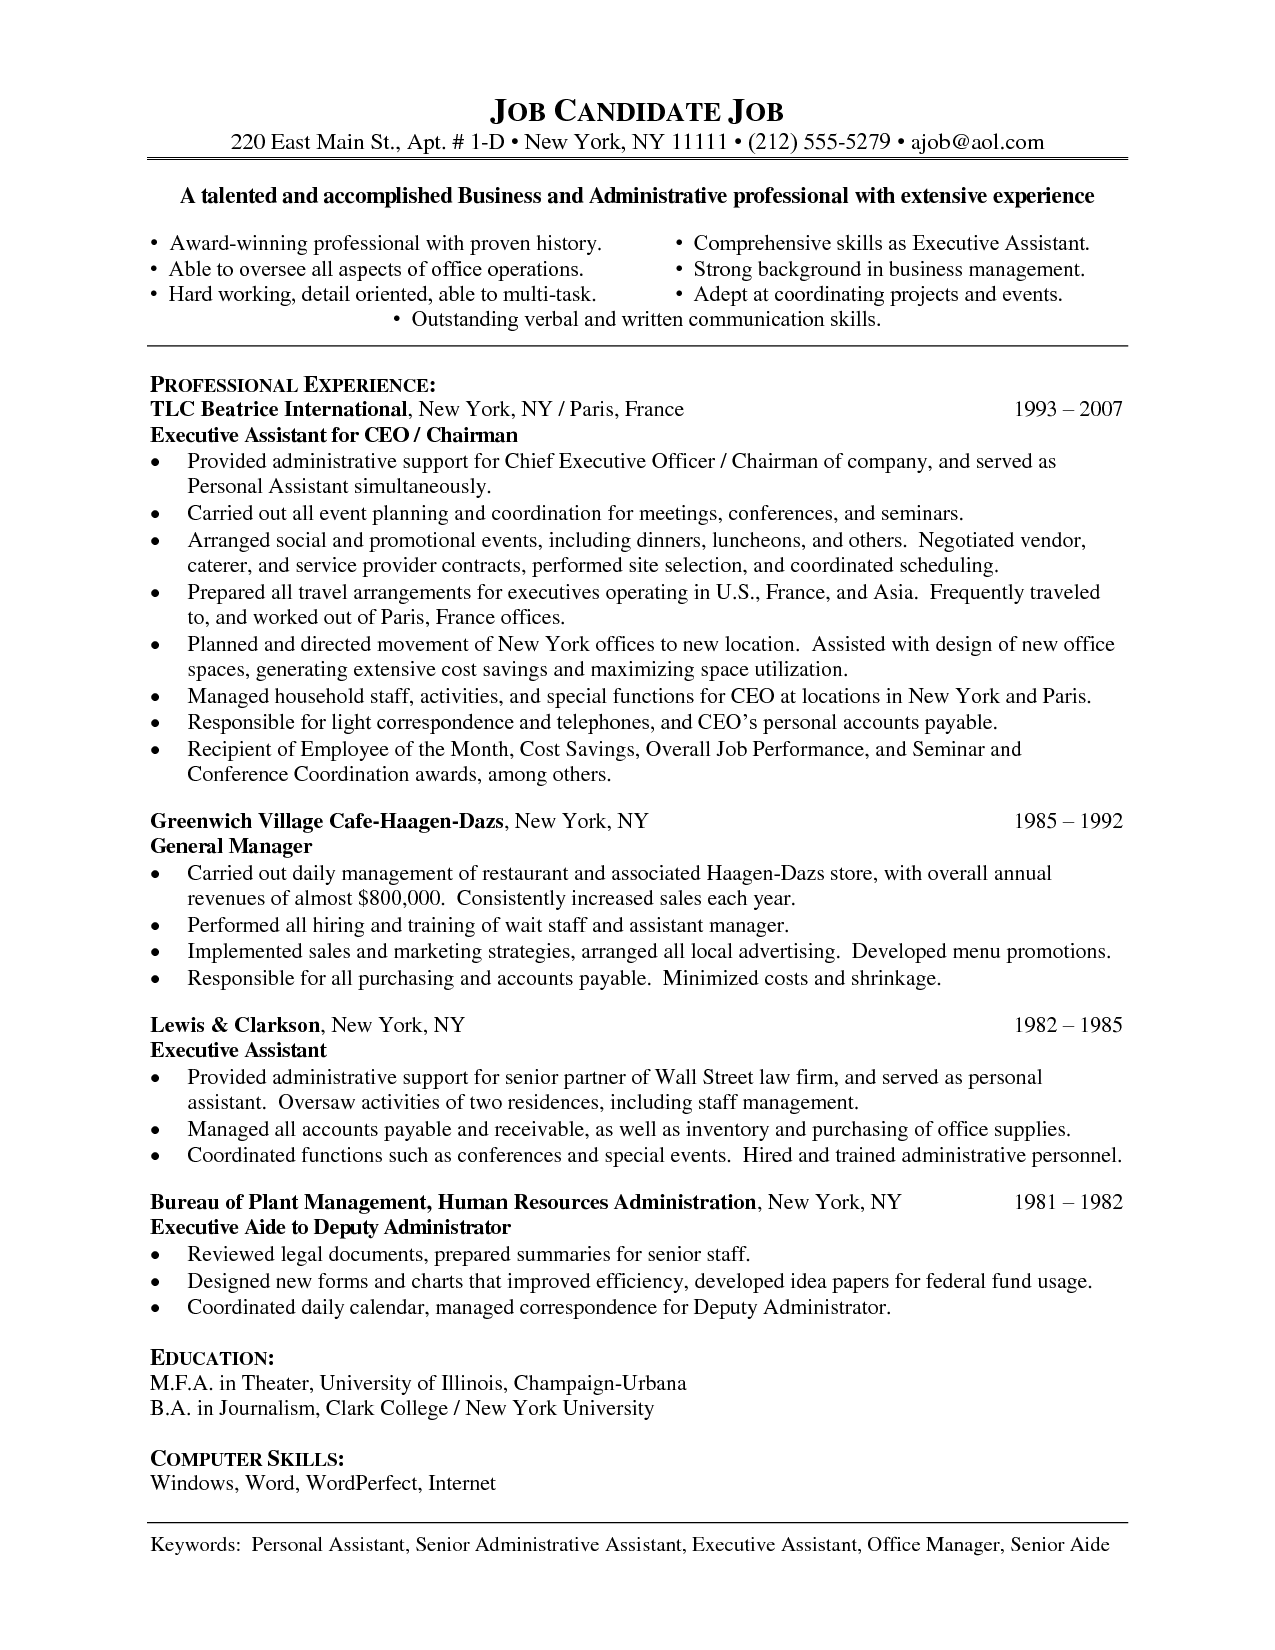 Sample Resumes For Administrative Assistant Positions Administrative Functional Resume Google Search